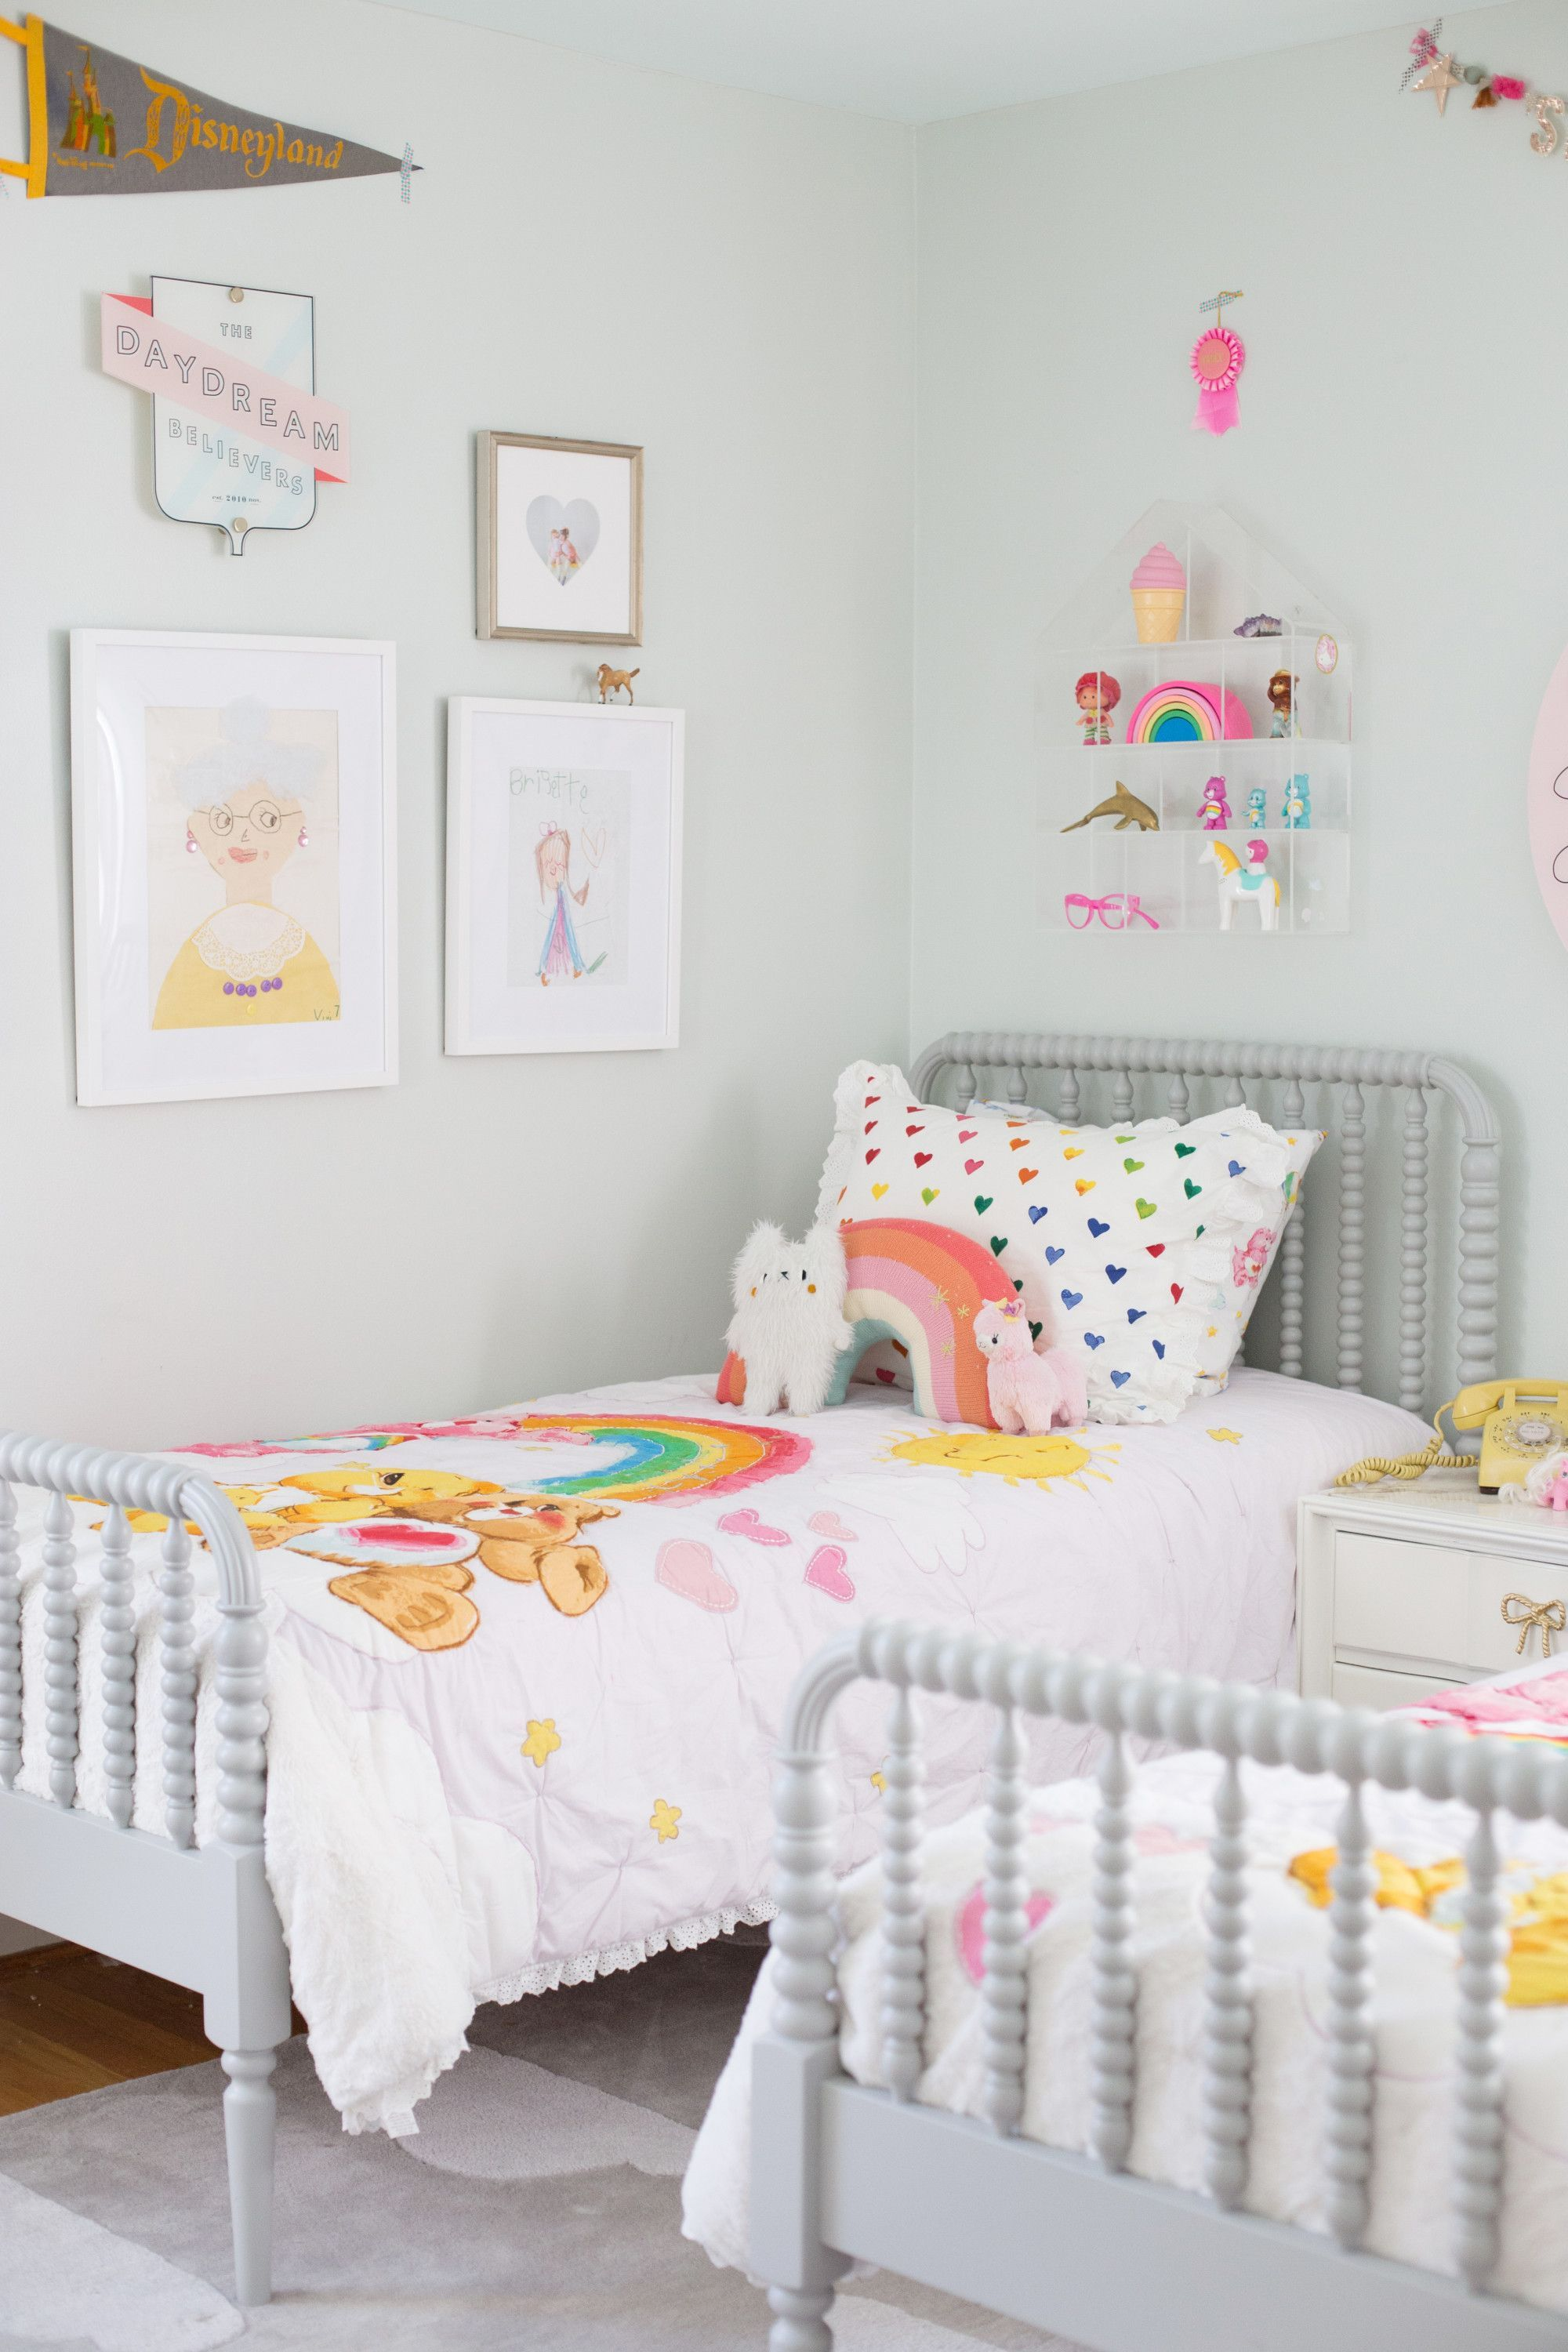 Shared Room Ideas For Three Girls On Laybabylaycom